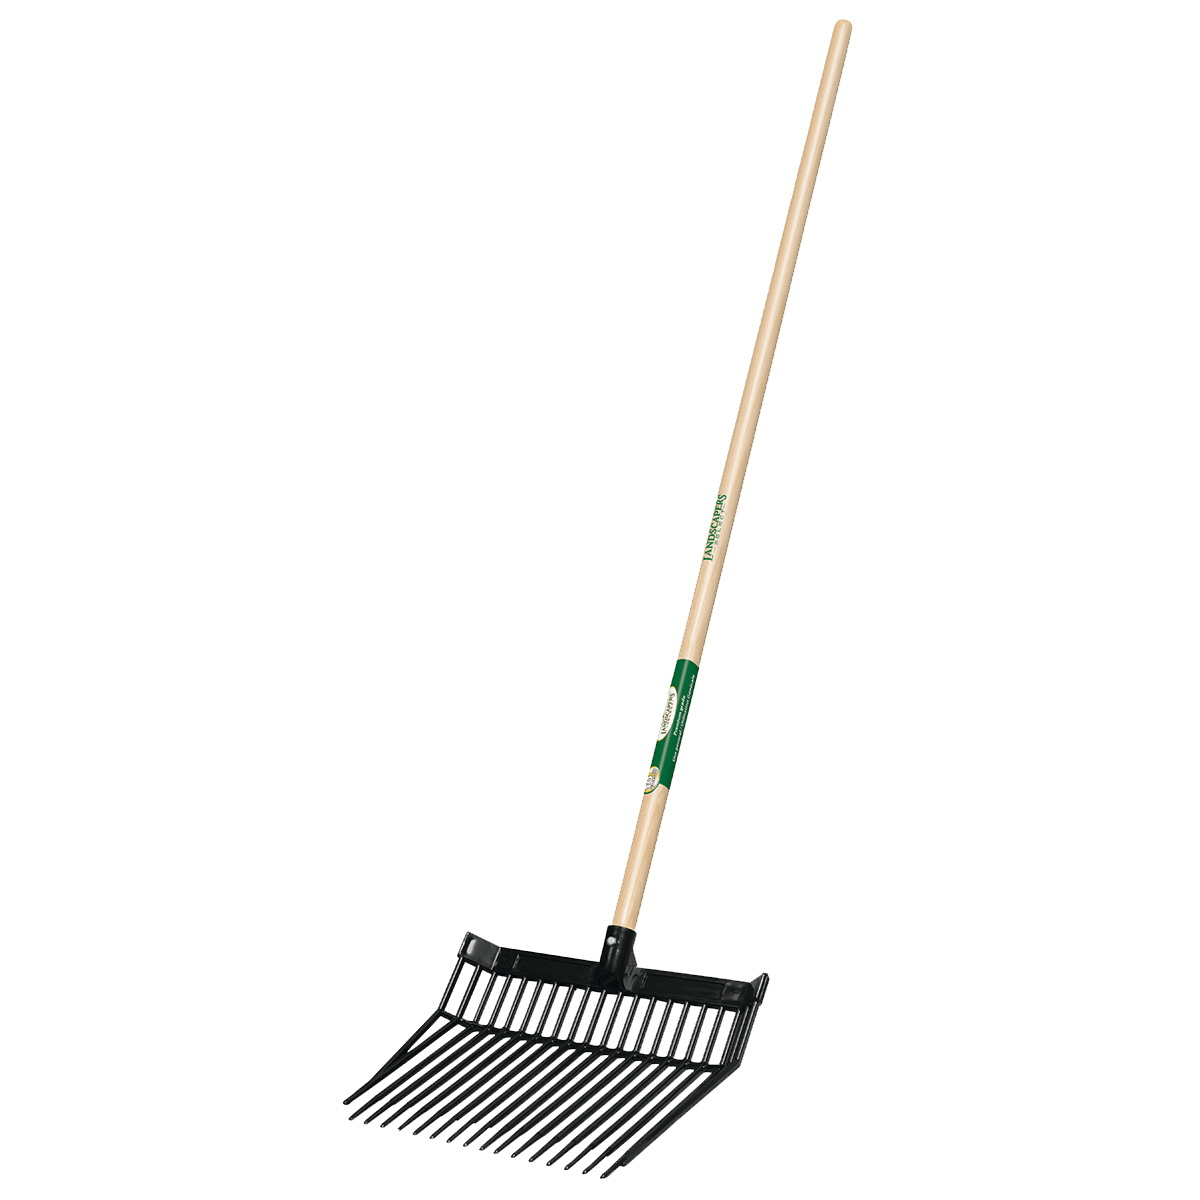 Picture of Landscapers Select 34622 Bedding Fork, Polycarbonate Tine, Wood Handle, 54 in L Handle